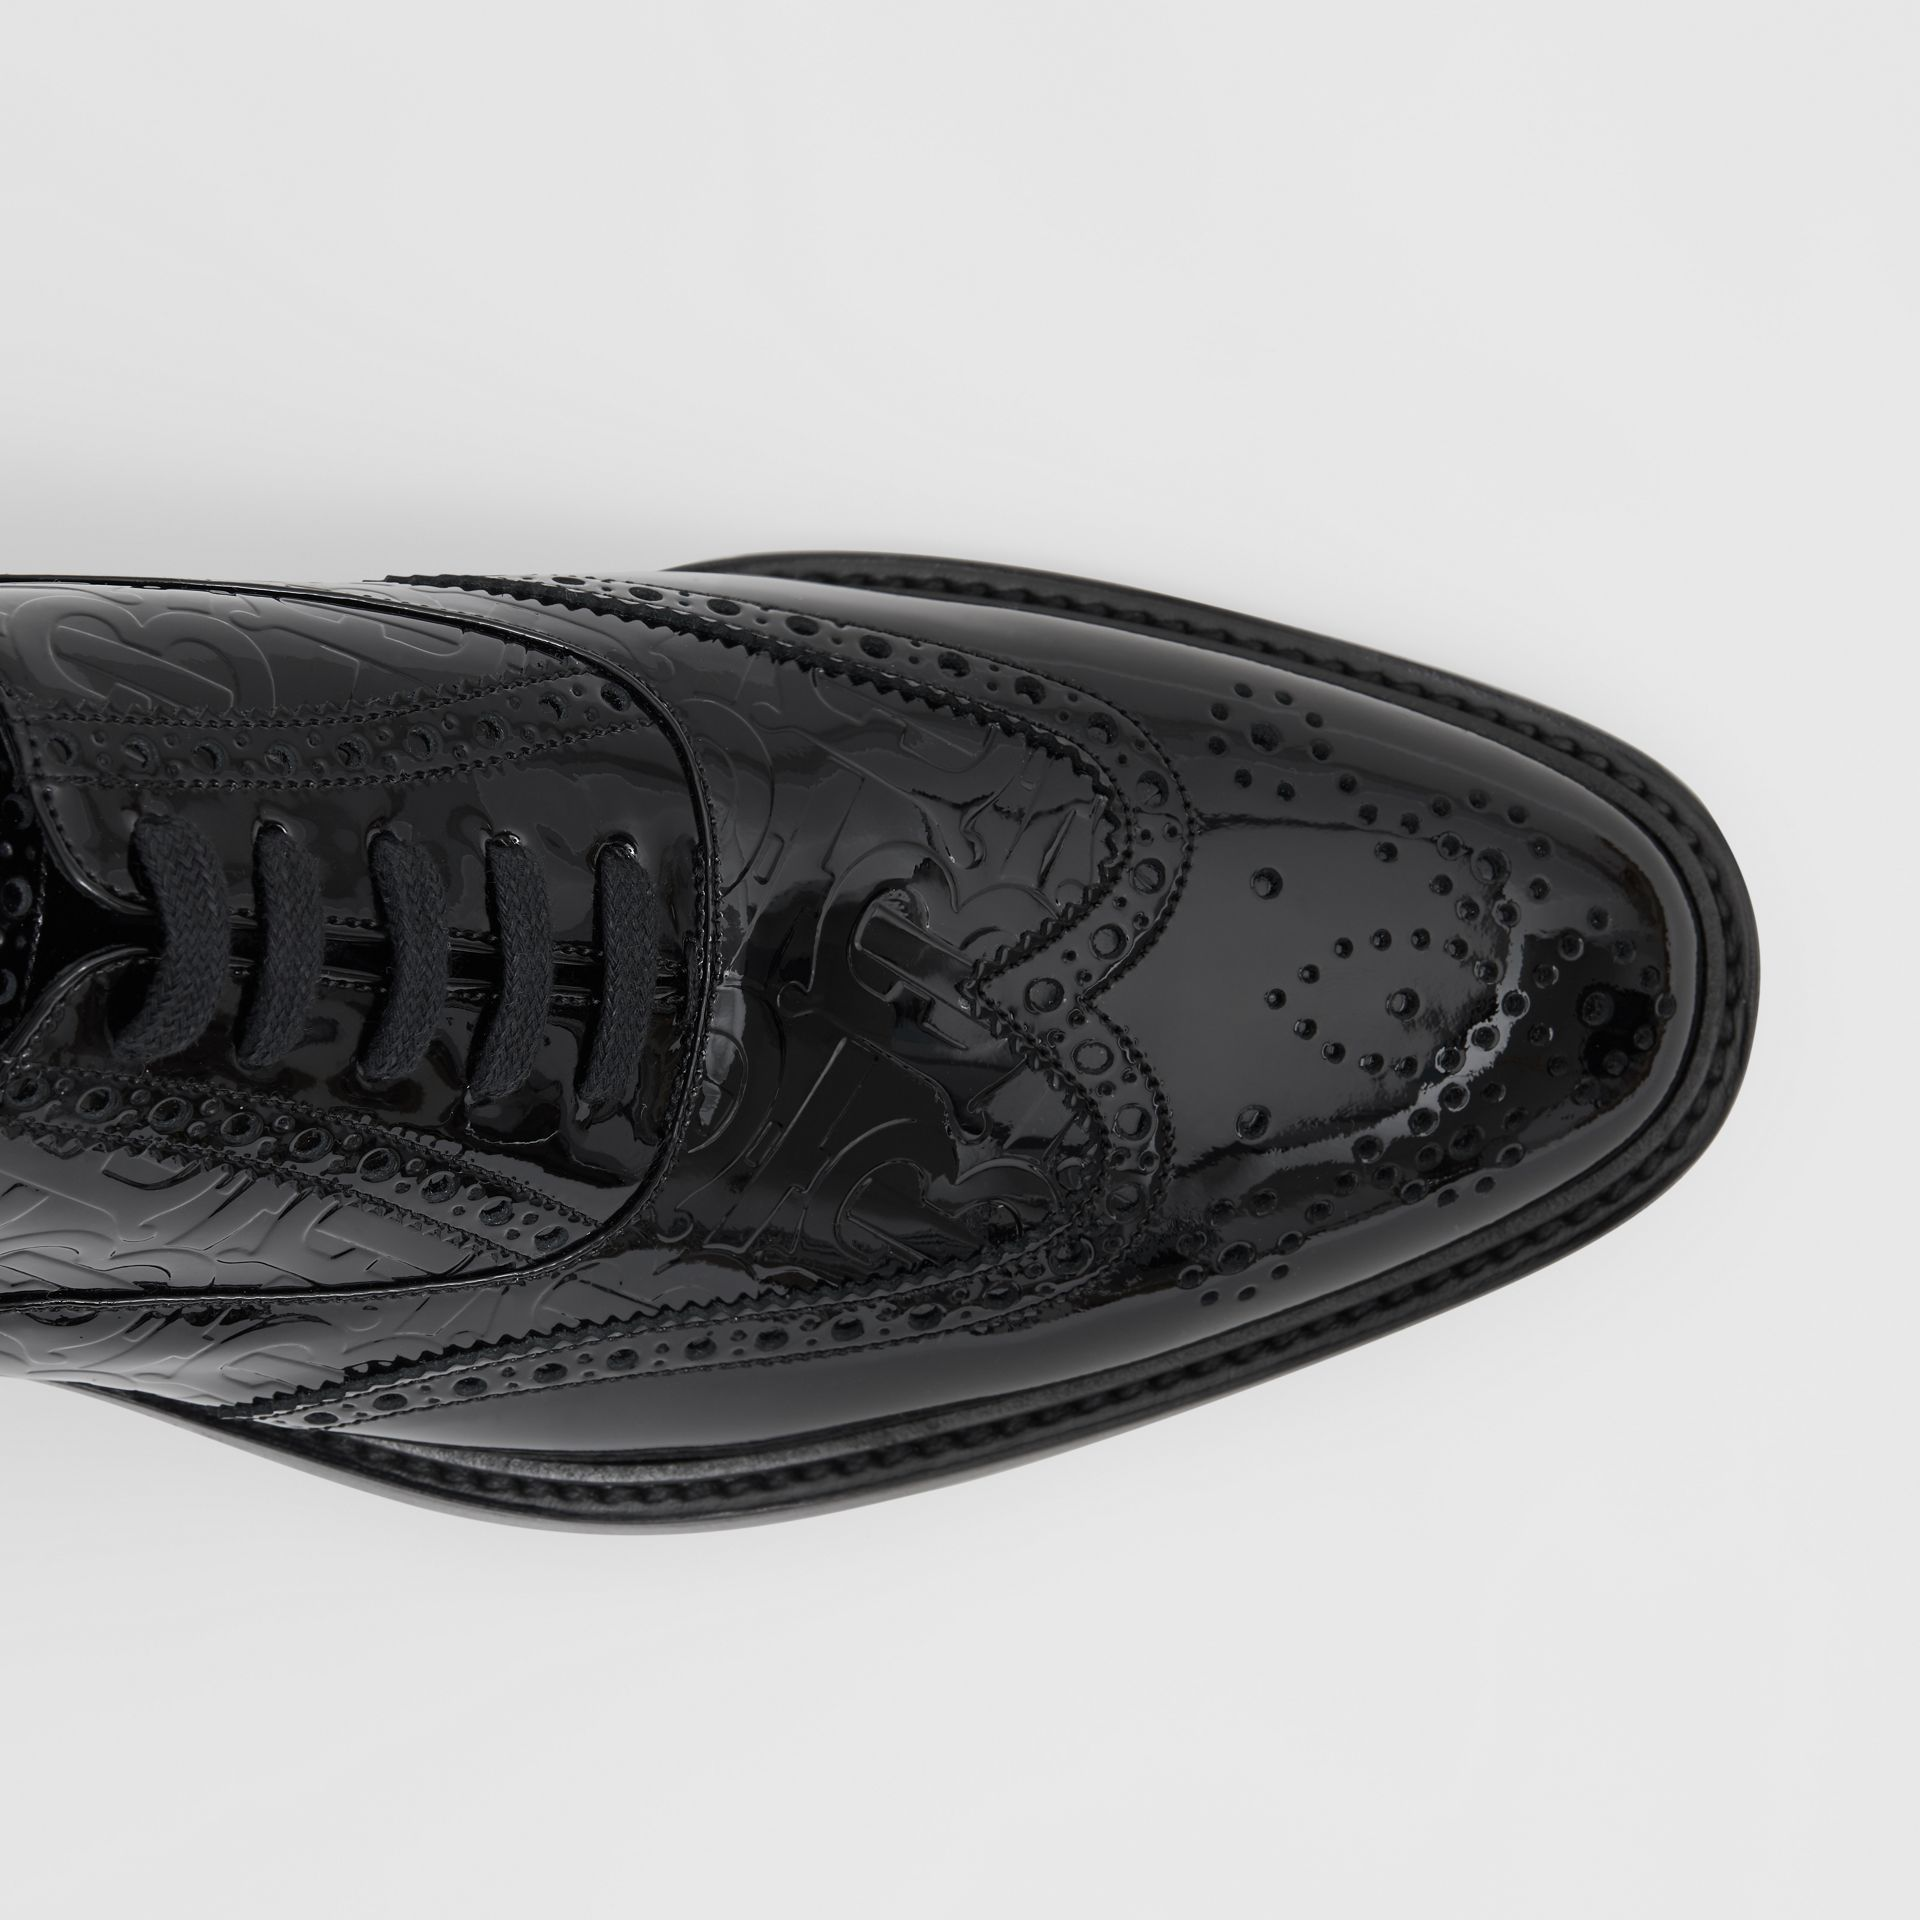 D-ring Detail Monogram Patent Leather Brogues in Black - Men | Burberry United Kingdom - gallery image 1